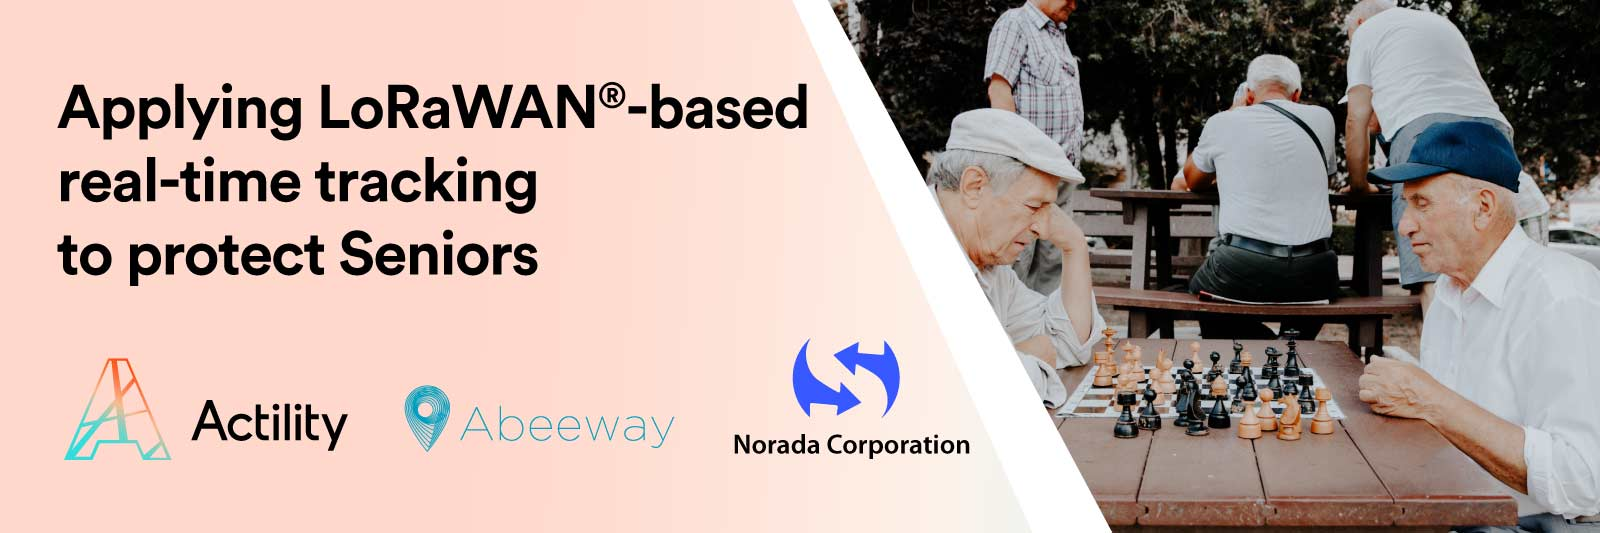 Image for Norada press release